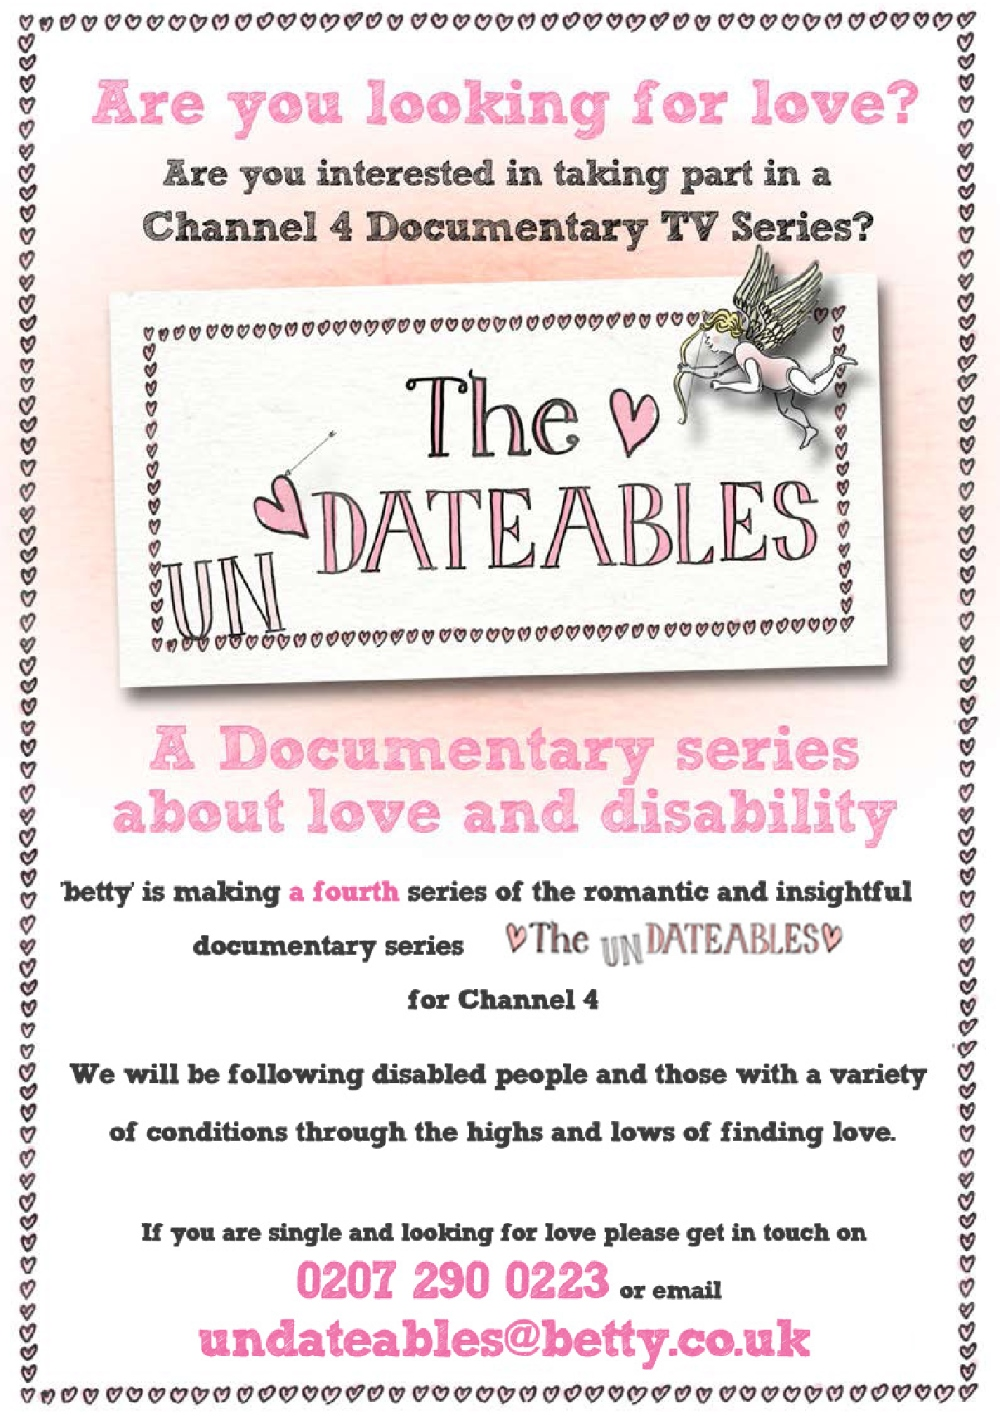 Click to view The Undateables profile and get involved now!